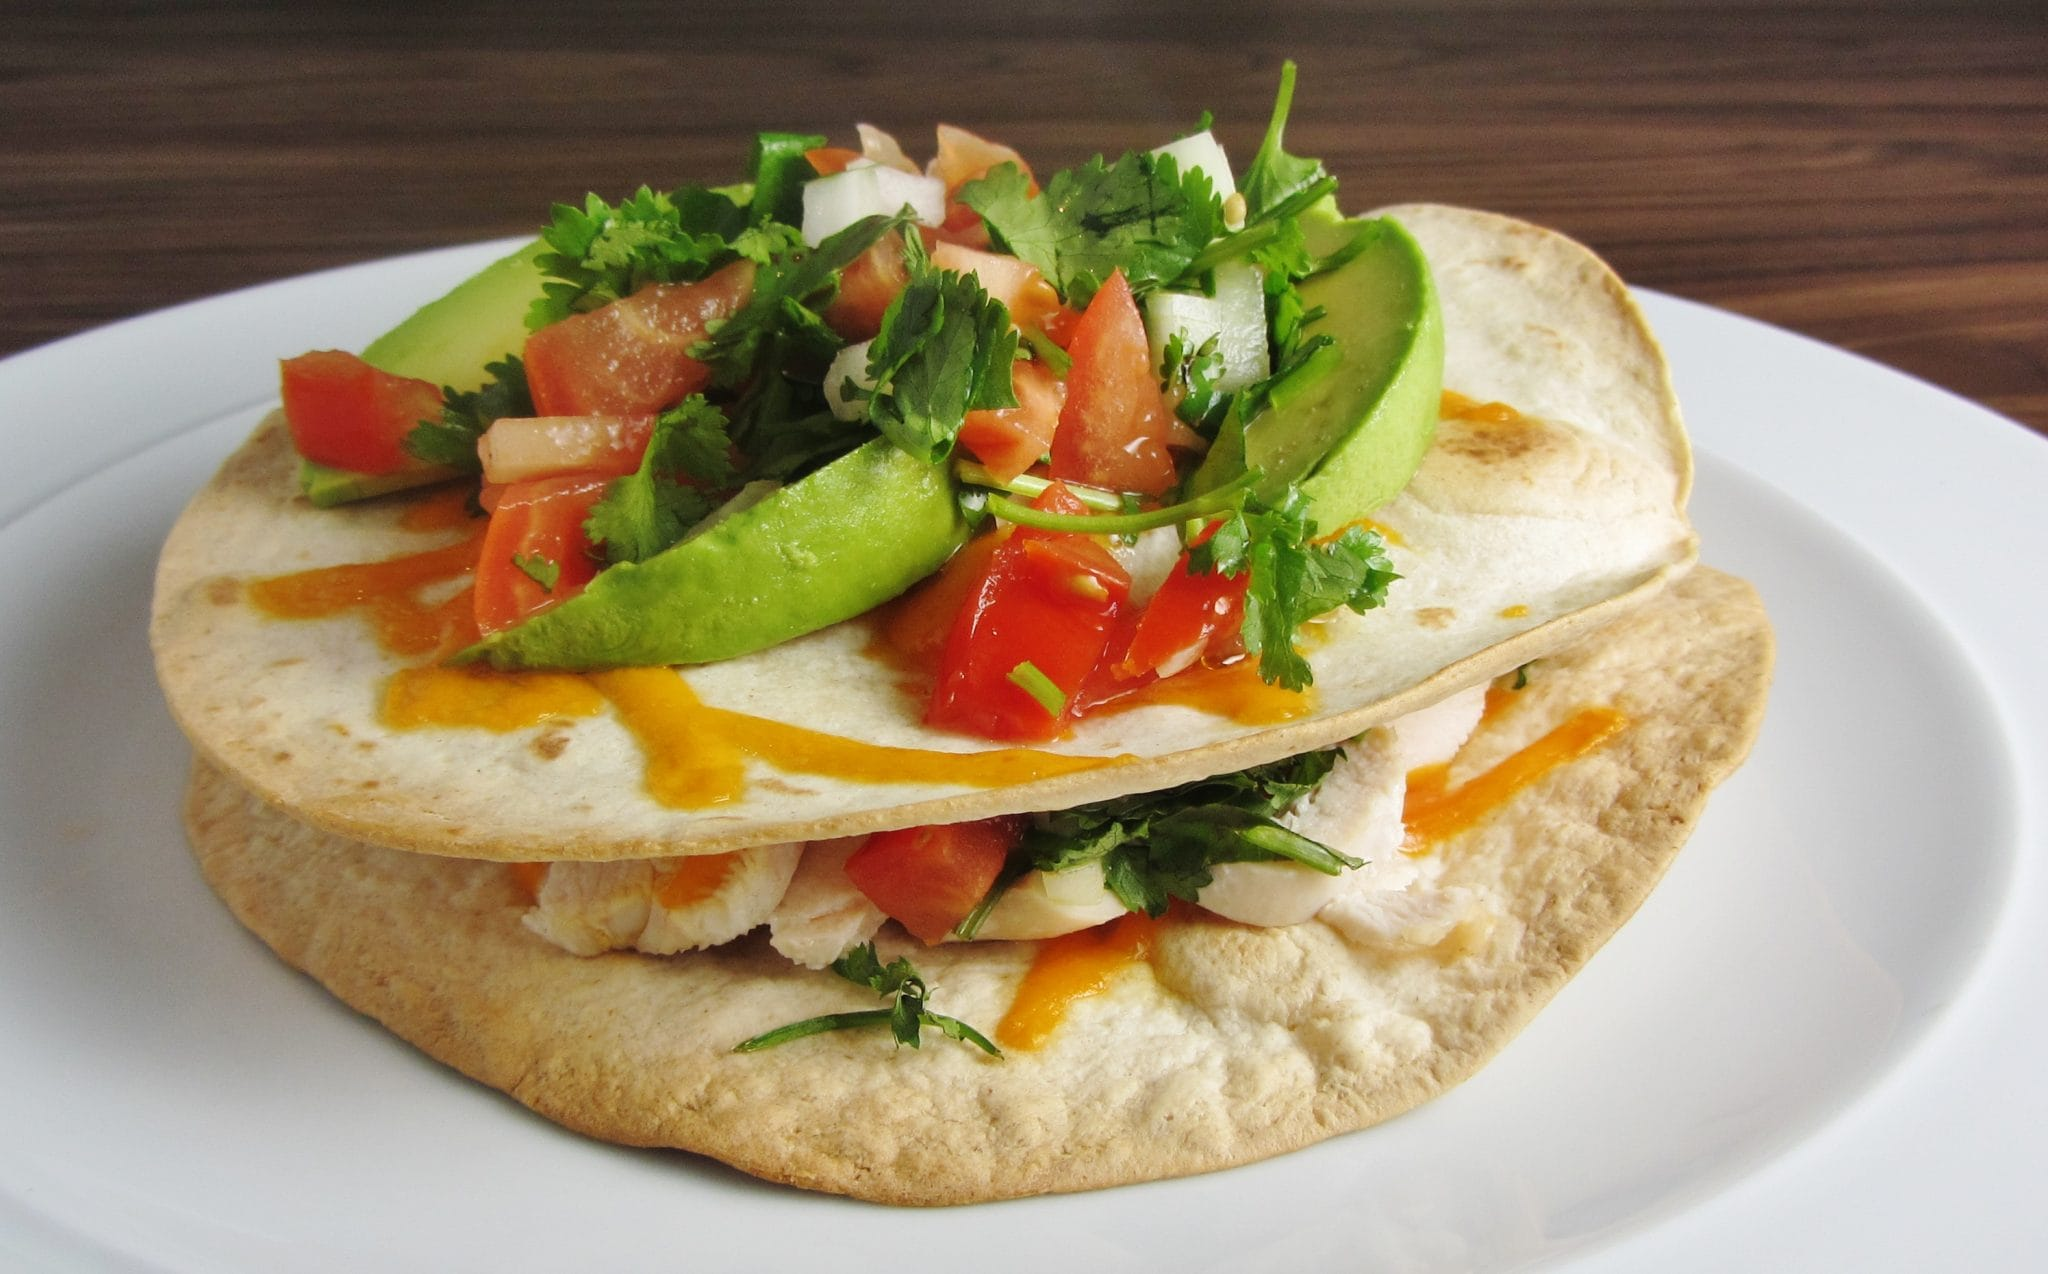 Chicken Tostadas with Pico de Gallo - Searching for Spice